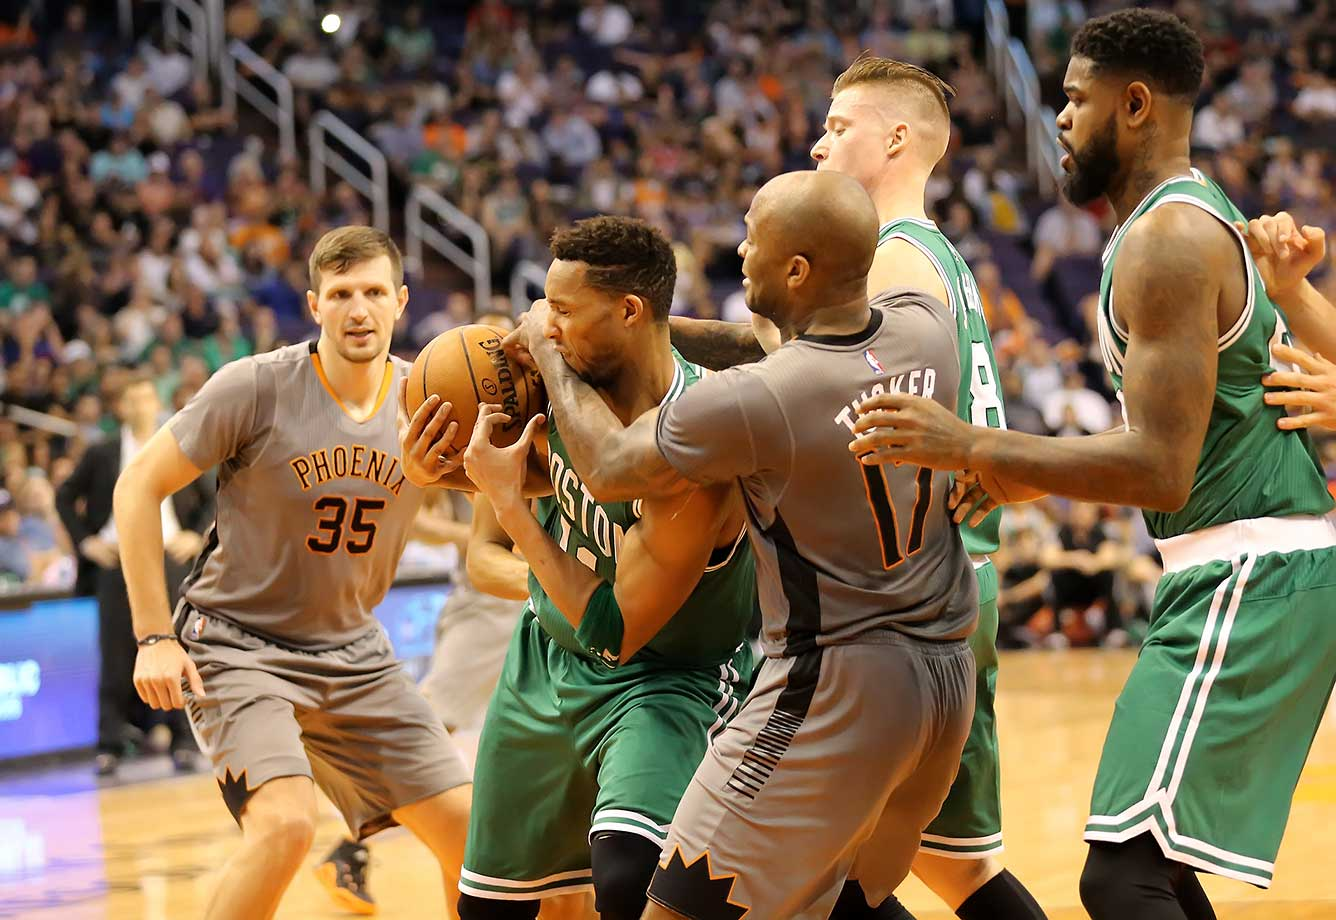 PJ Tucker and Evan Turner fight for a rebound in the final minute of the Suns vs Celtics game.